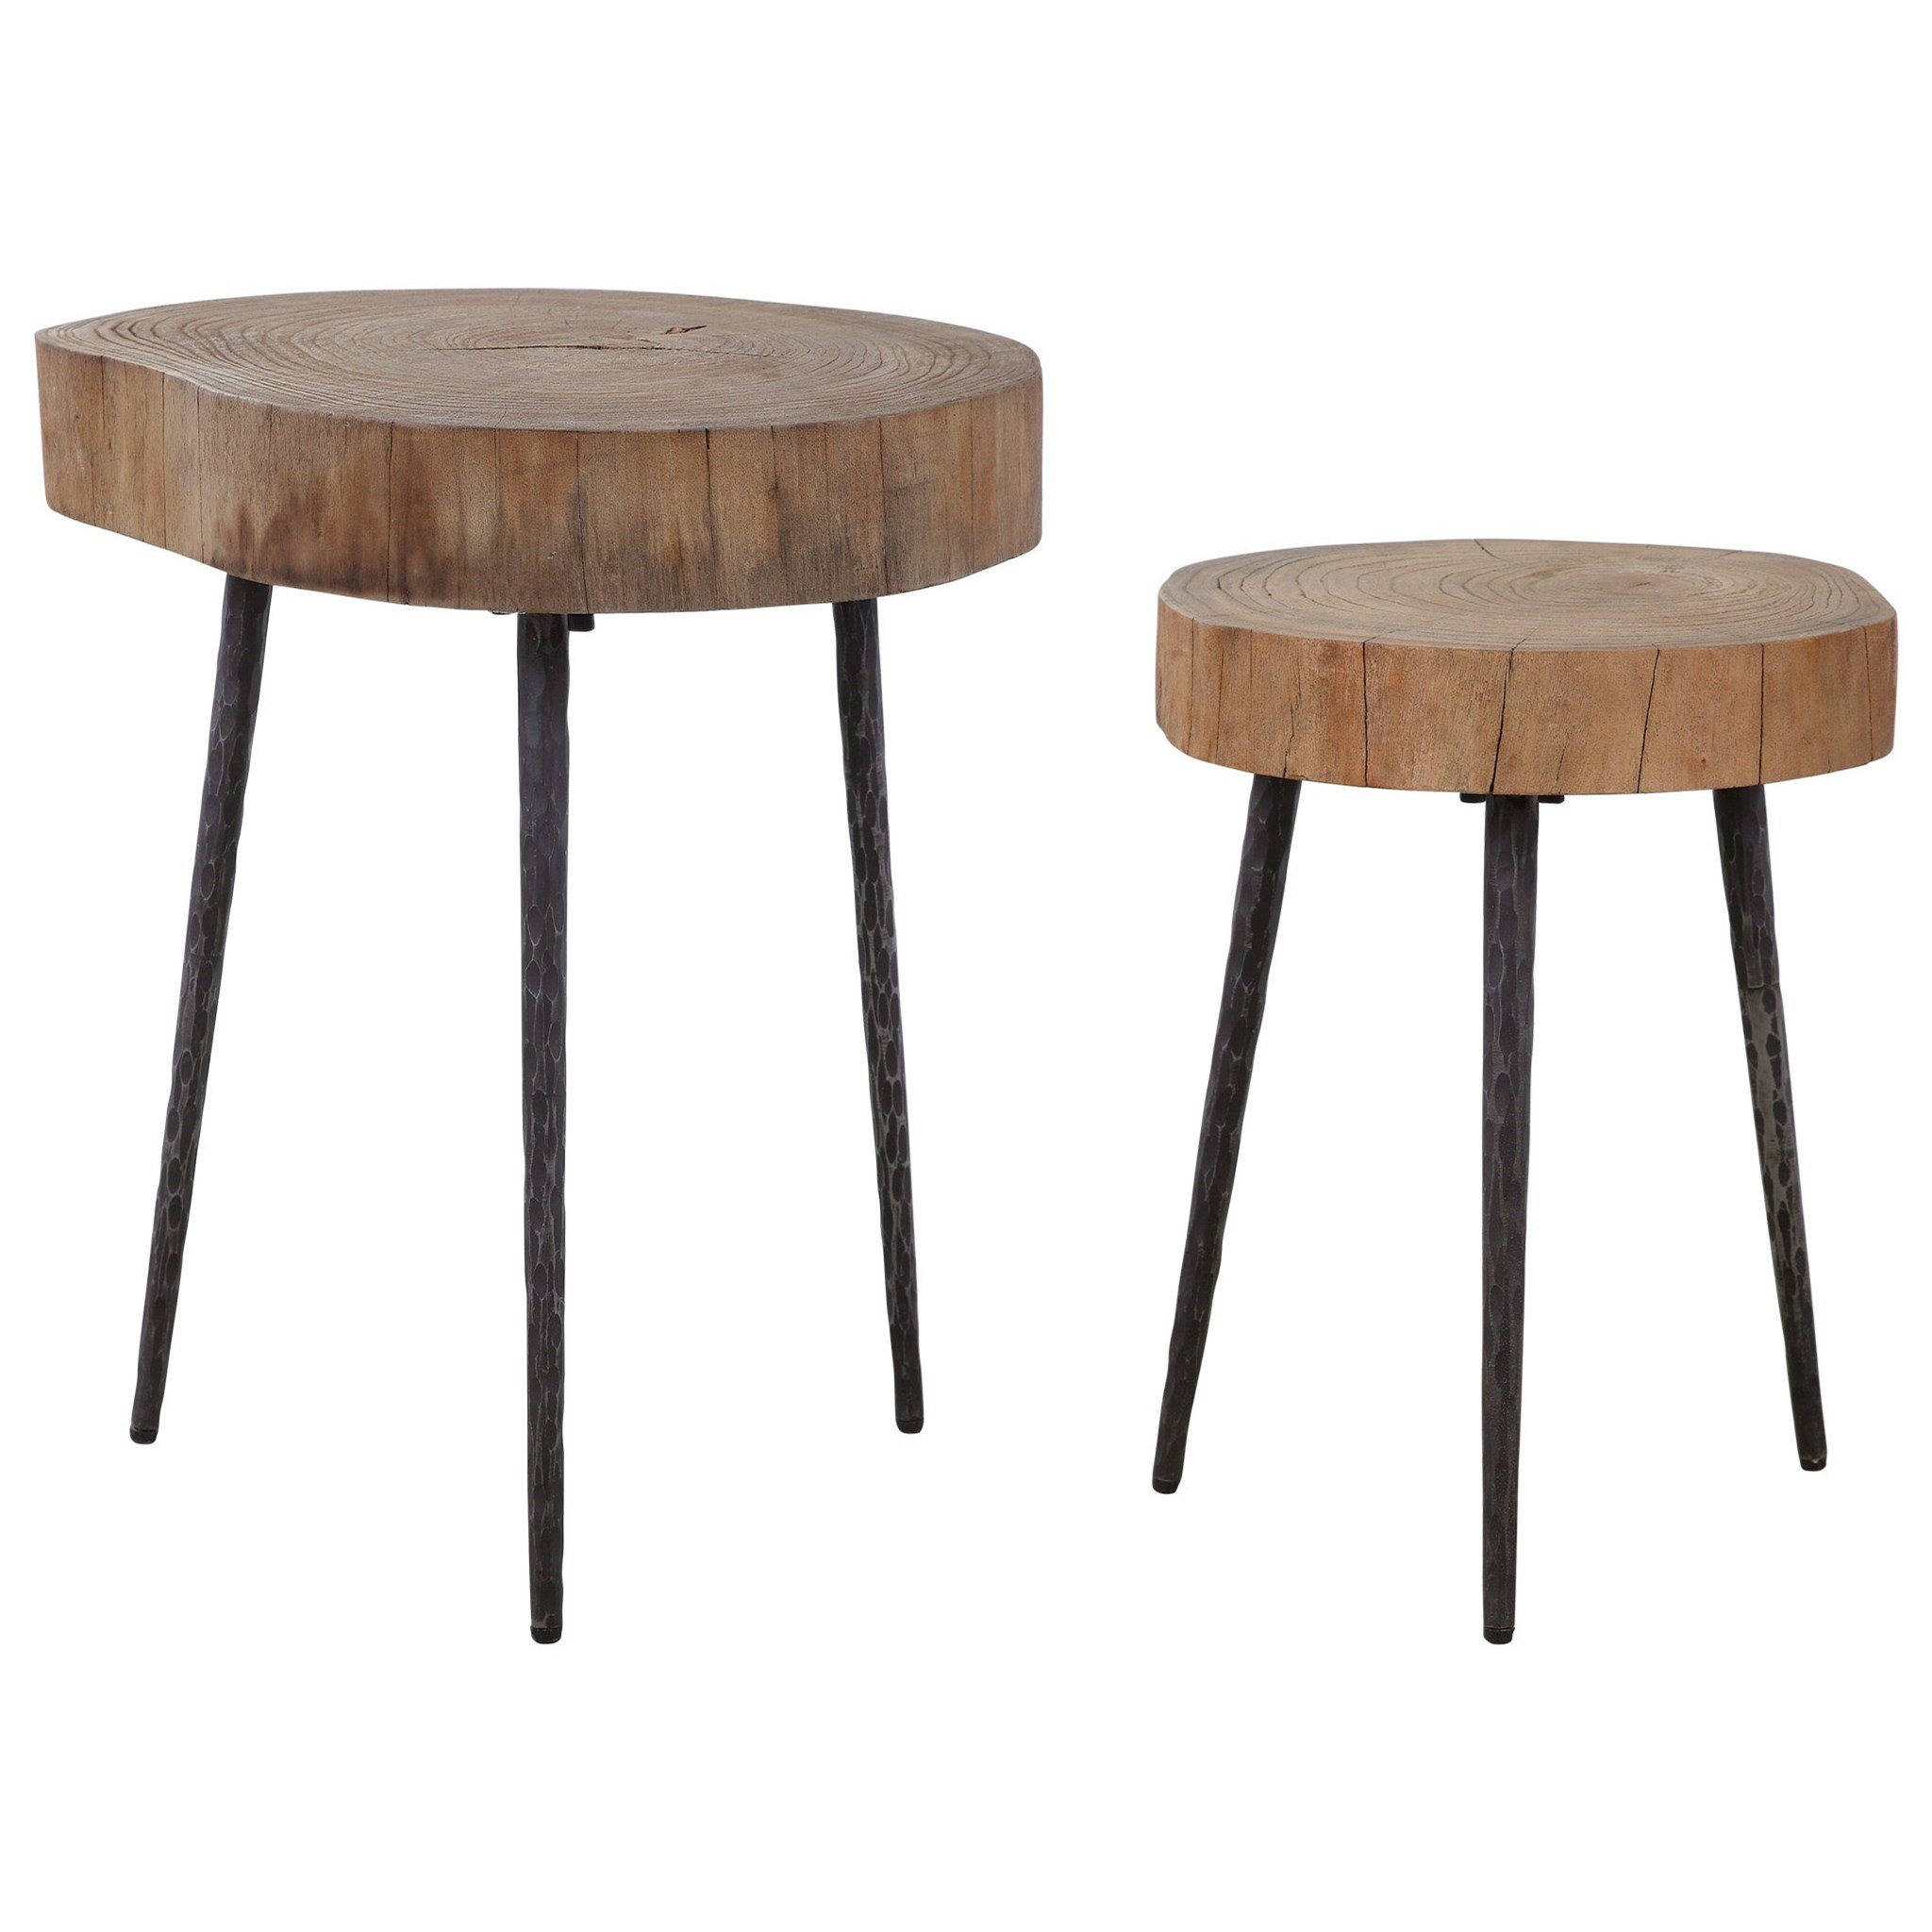 Accent Furniture - Occasional Tables Samba Wood Nesting Tables S/2 by Uttermost at Mueller Furniture